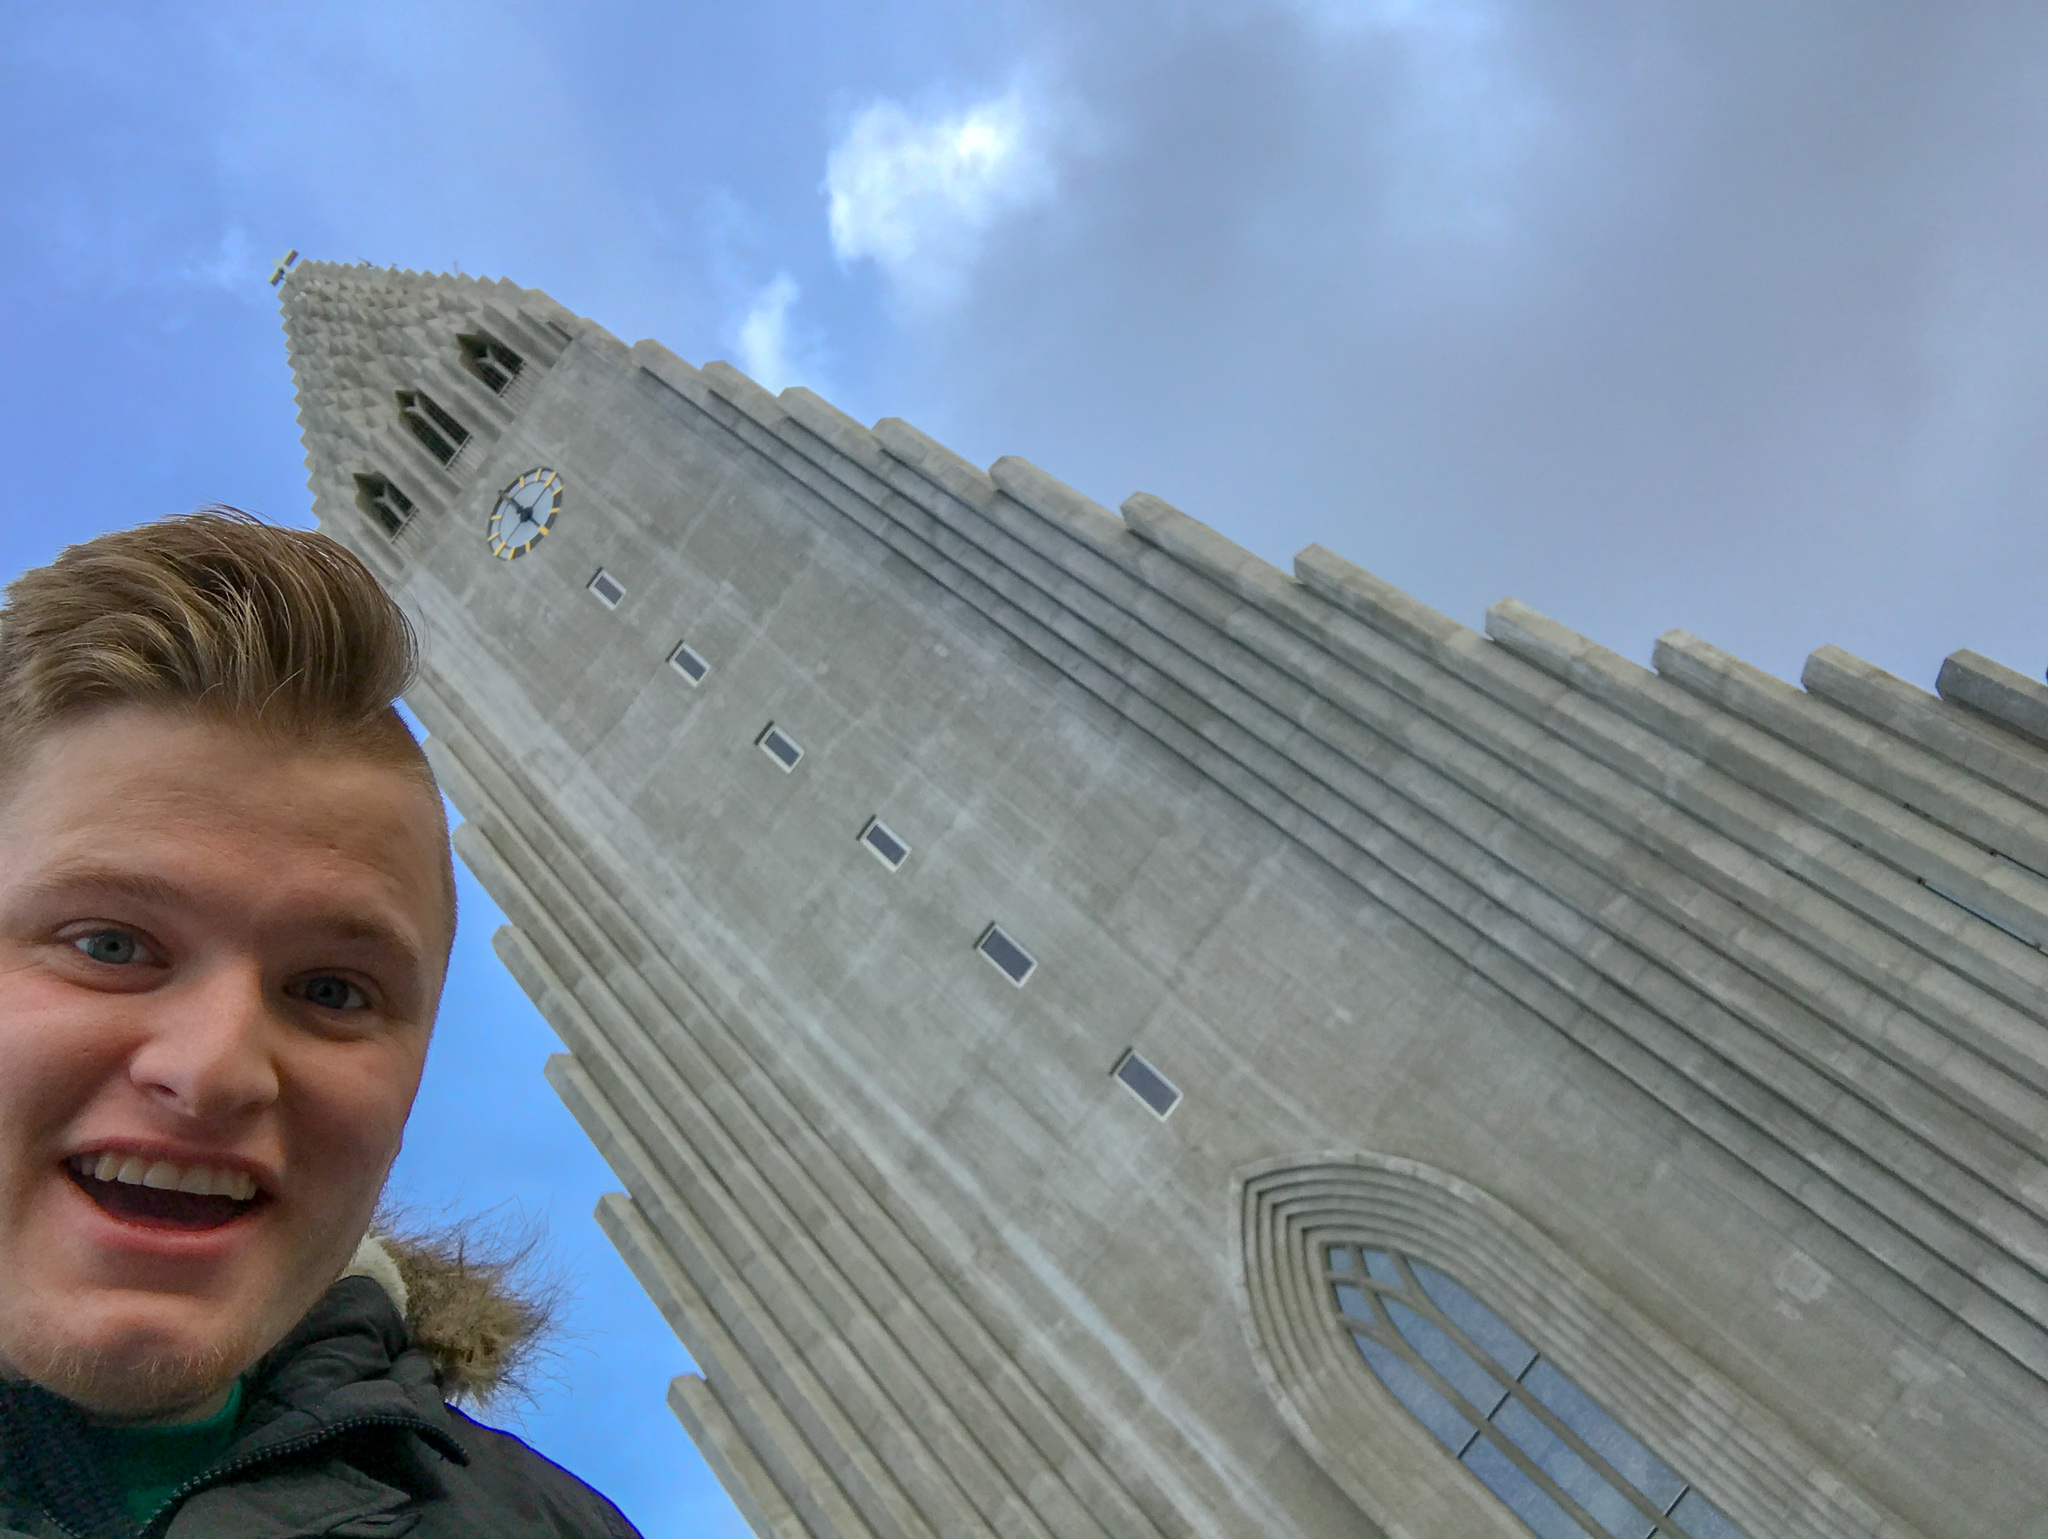 Hallgrimskirkja is hard to frame when taking a photo, so here's me snapping a selfie with it.